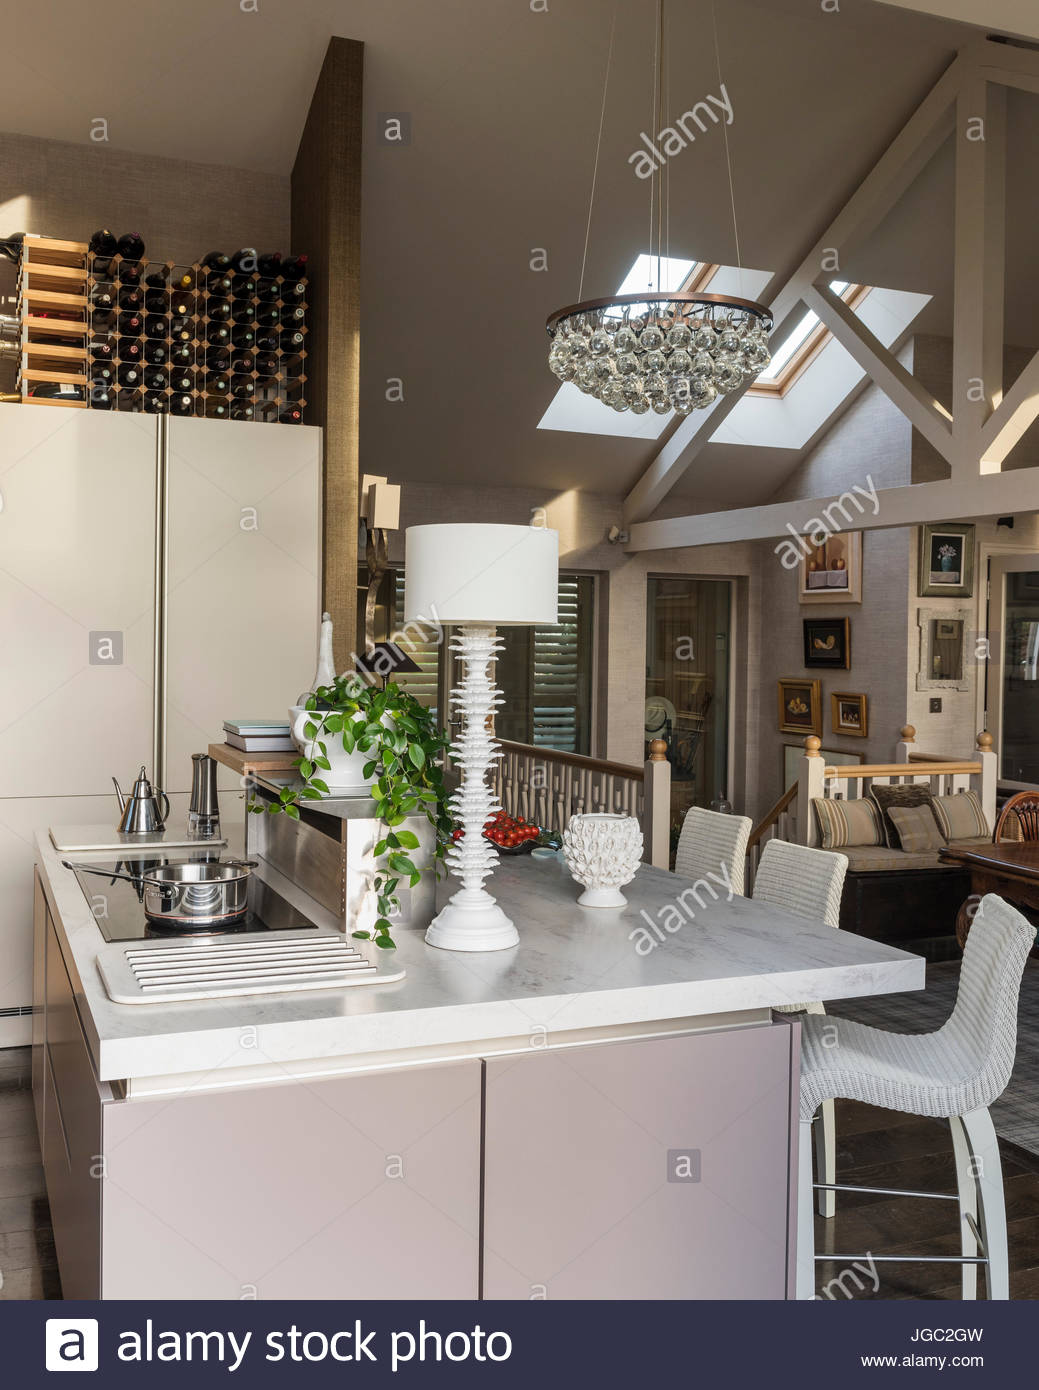 Pendant Light Above Table In Stockfotos & Pendant Light Above Table ...